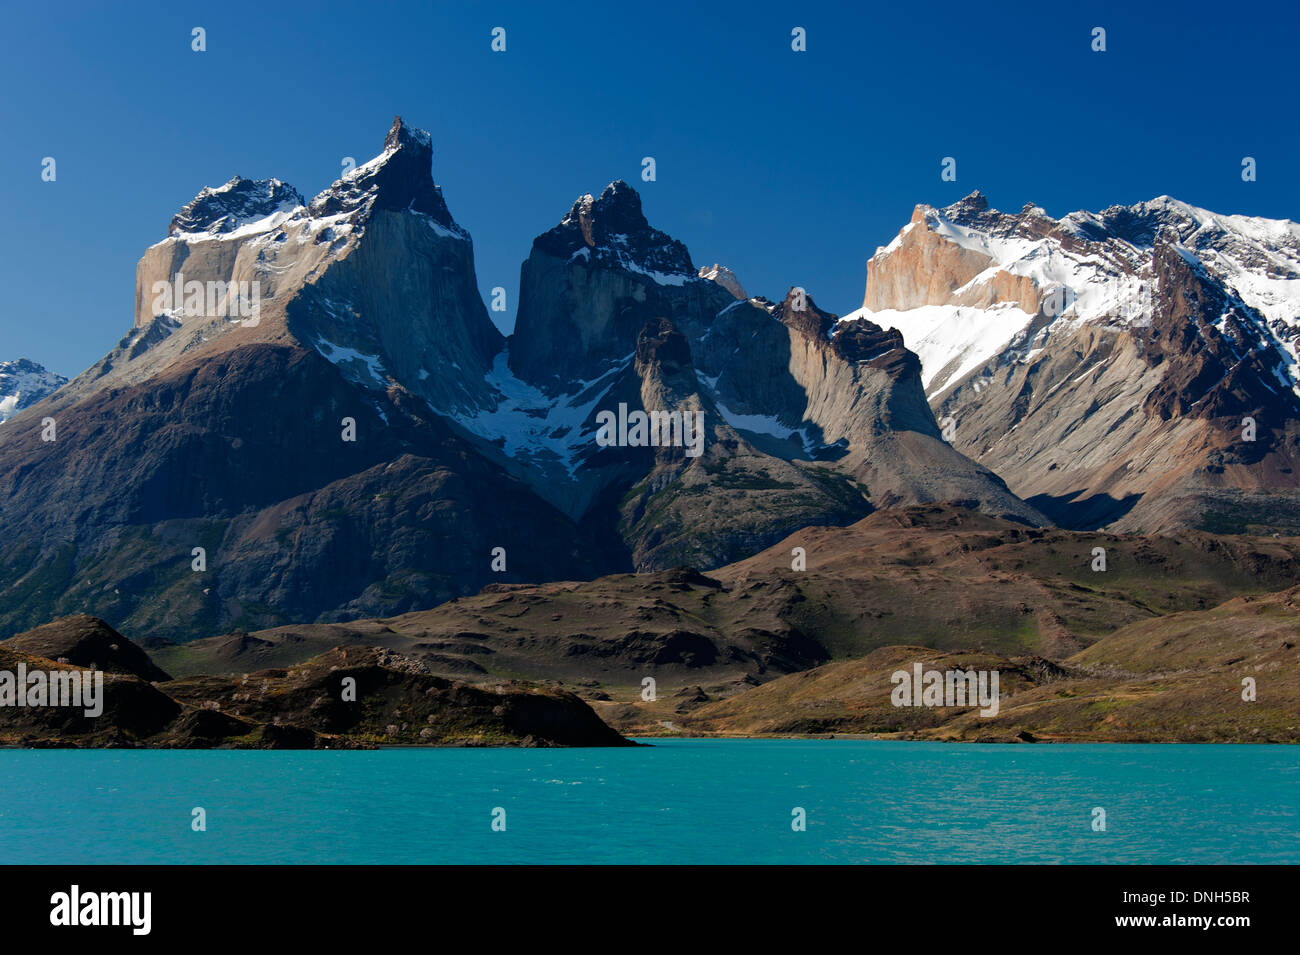 Los Cuernos massif in Torrel del Paine national park, Chile - Stock Image